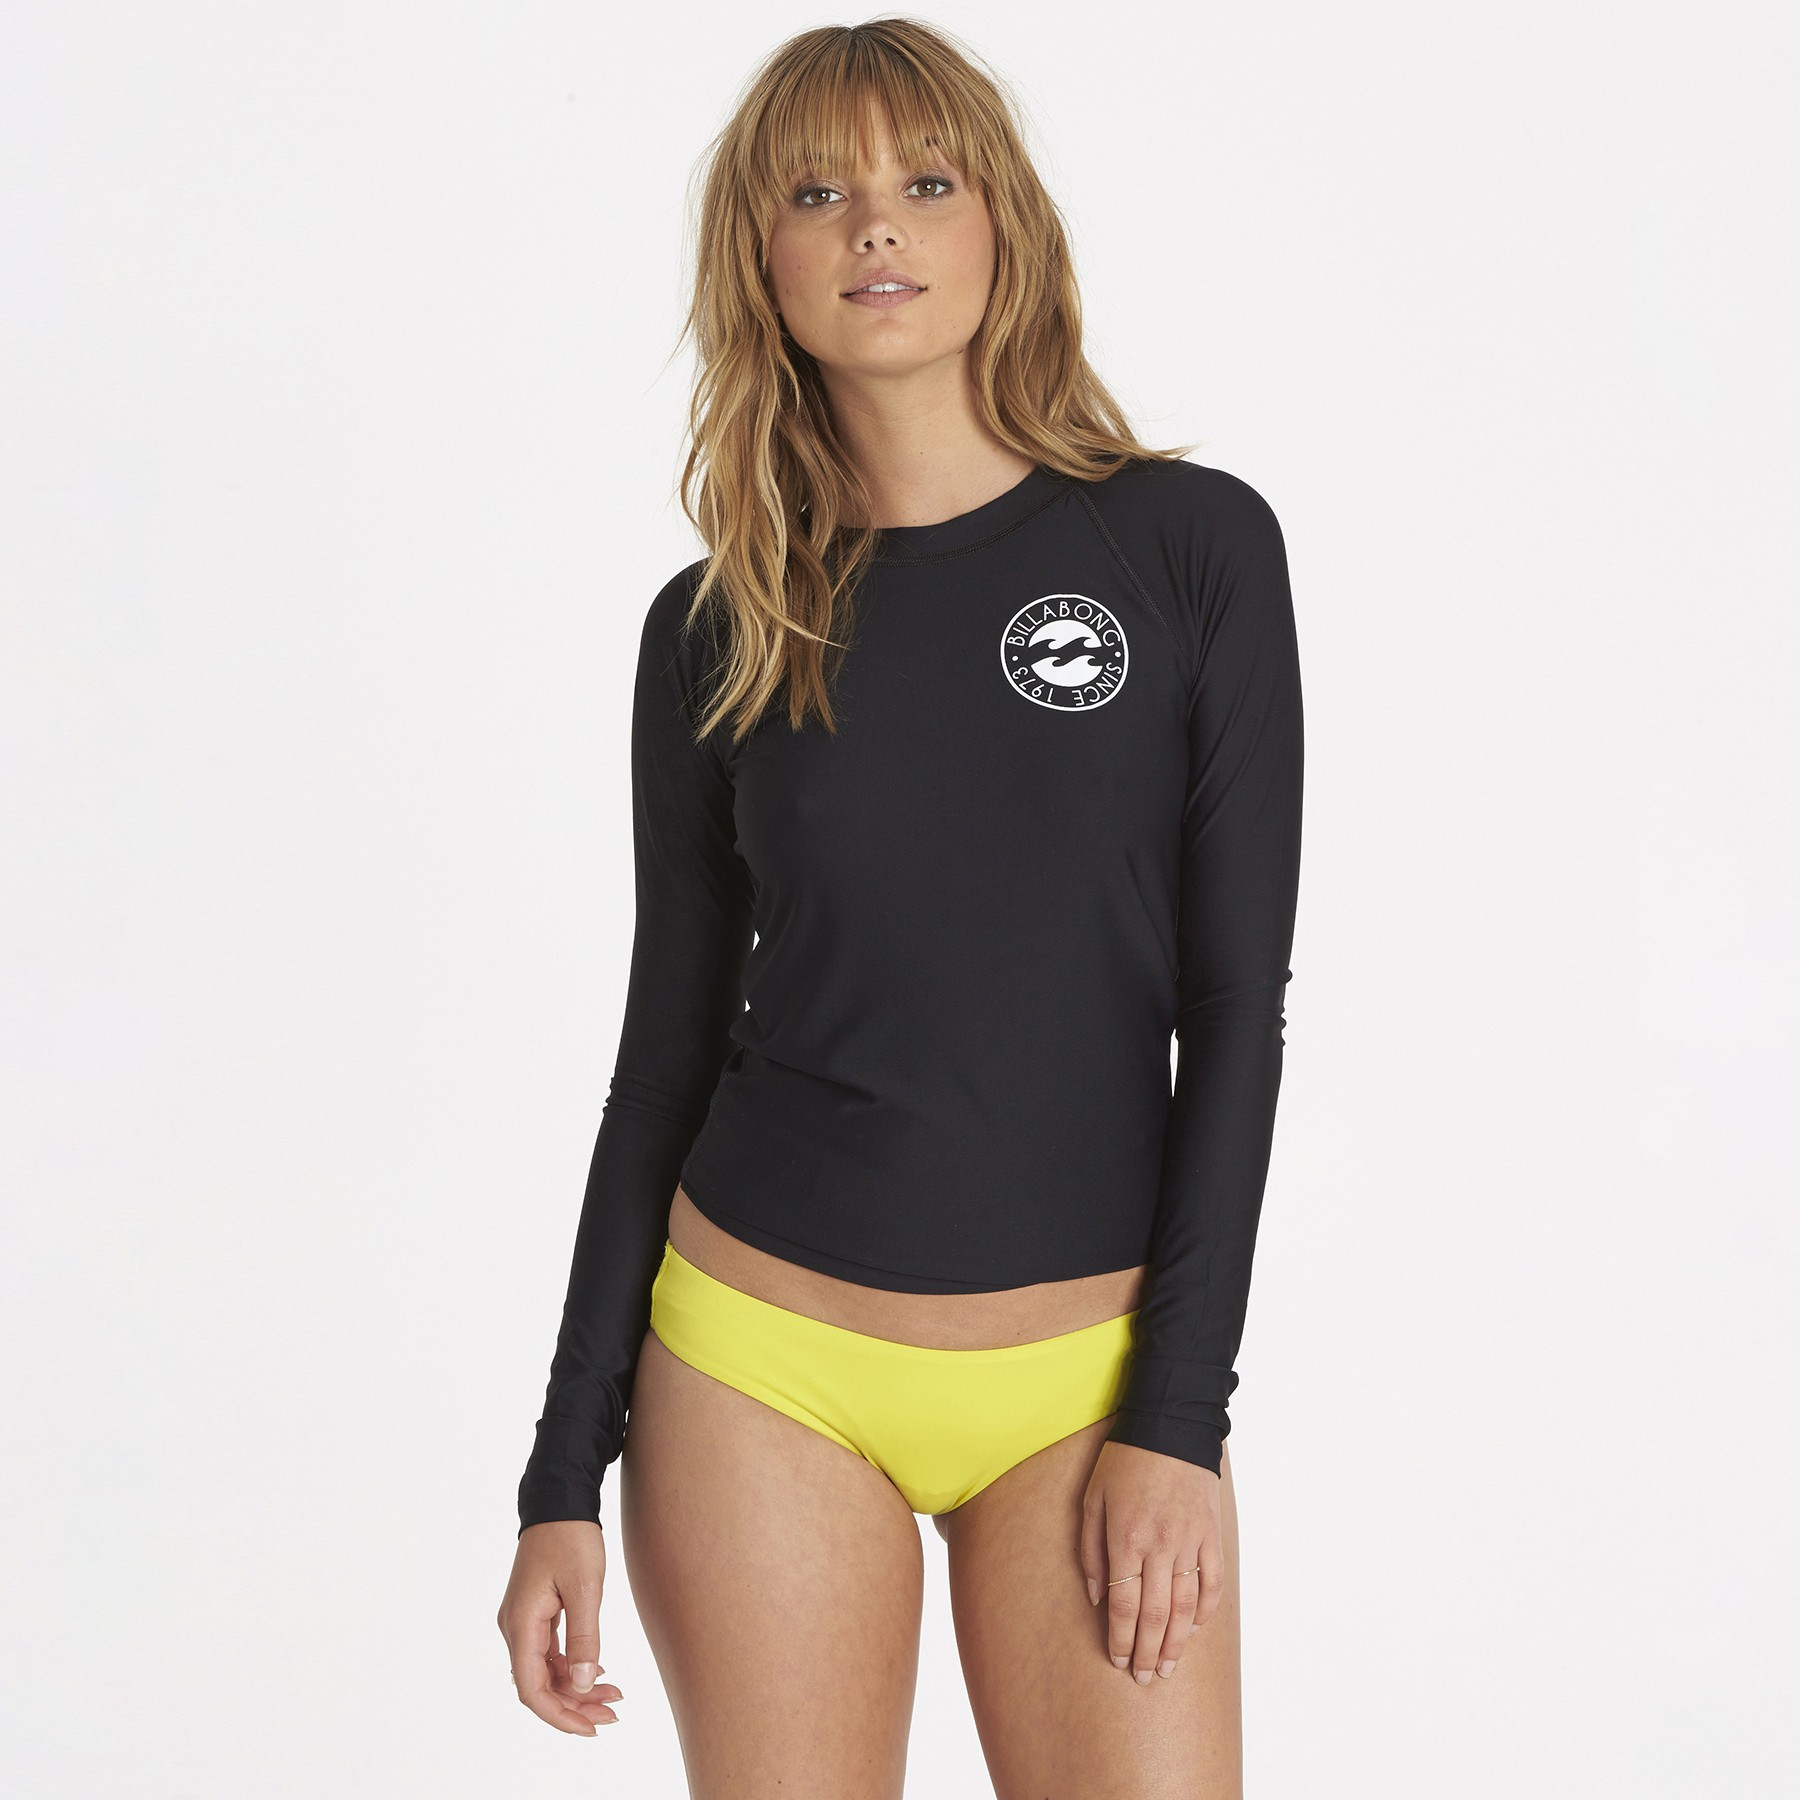 Billabong Core Performance Fit +50 UV Long-Sleeved Rashguard (Women's)